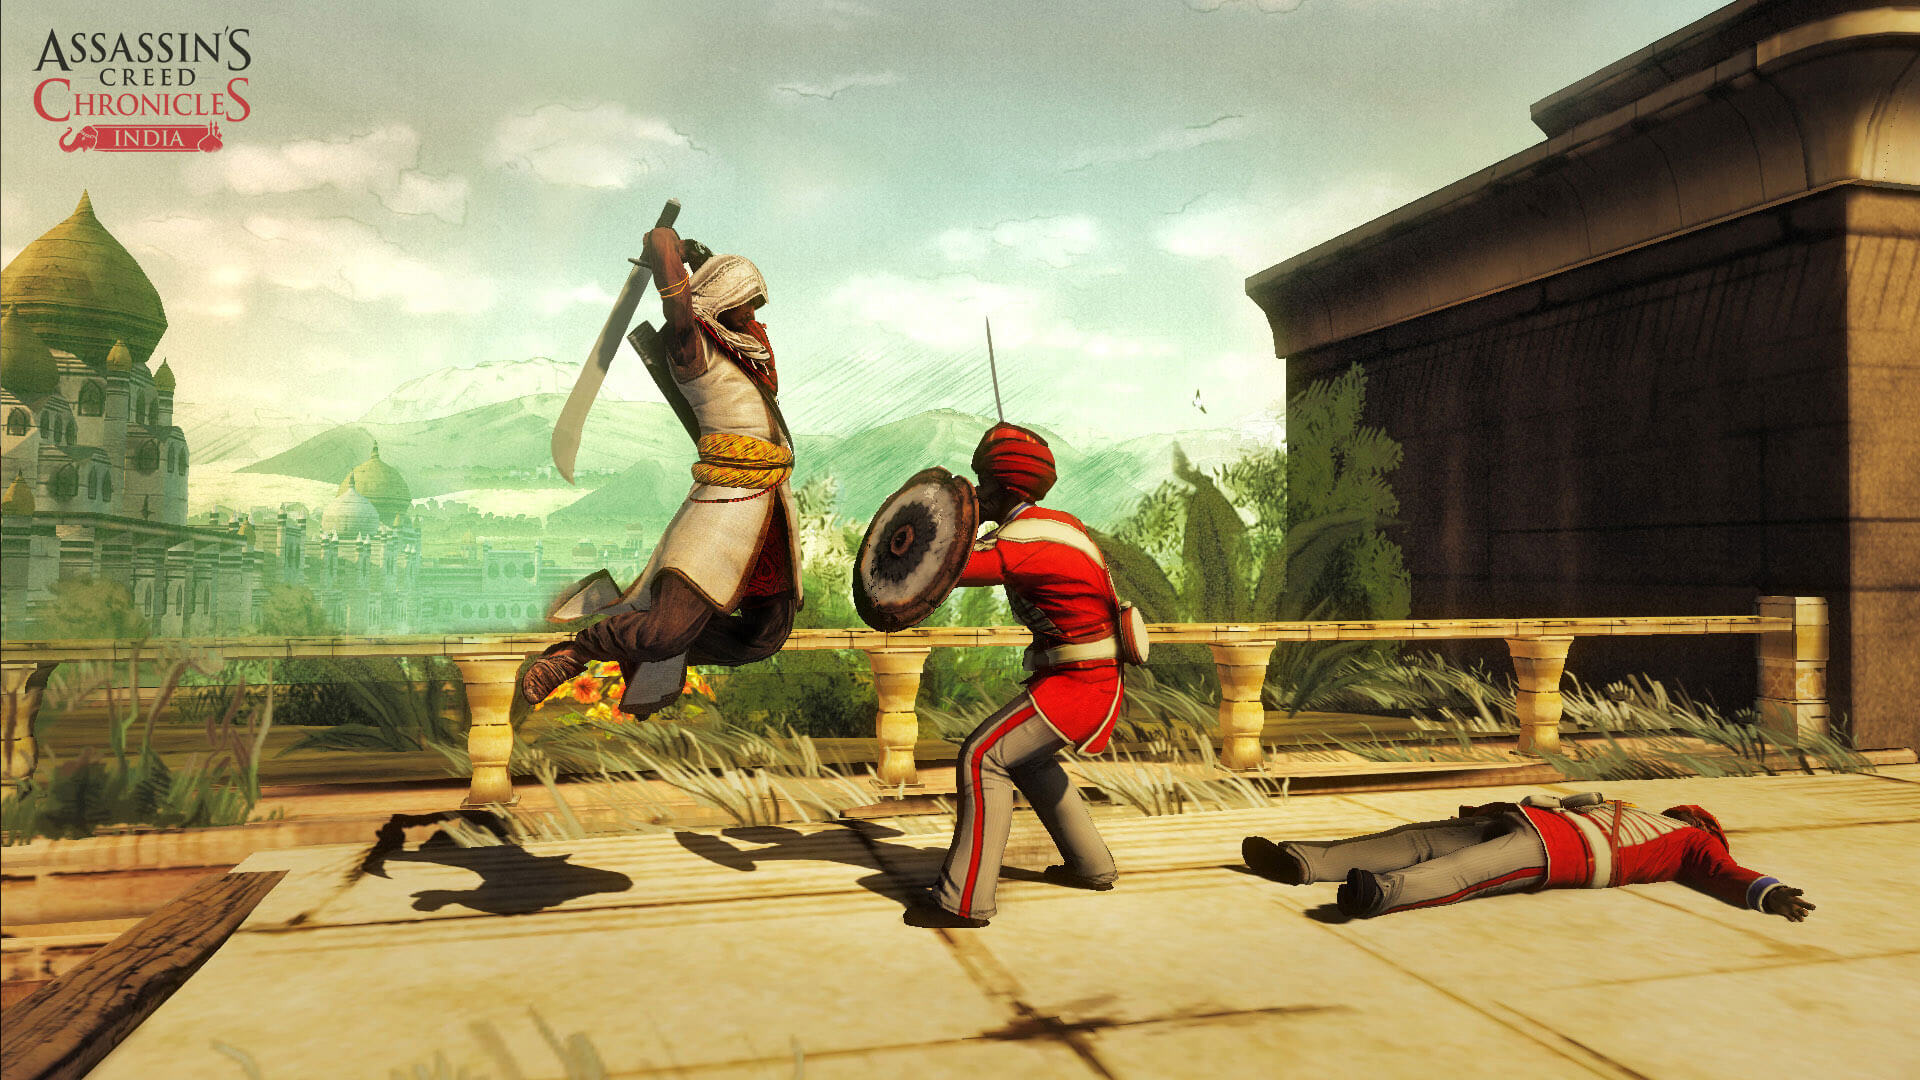 Assassin's Creed Chronicles: India Masthead